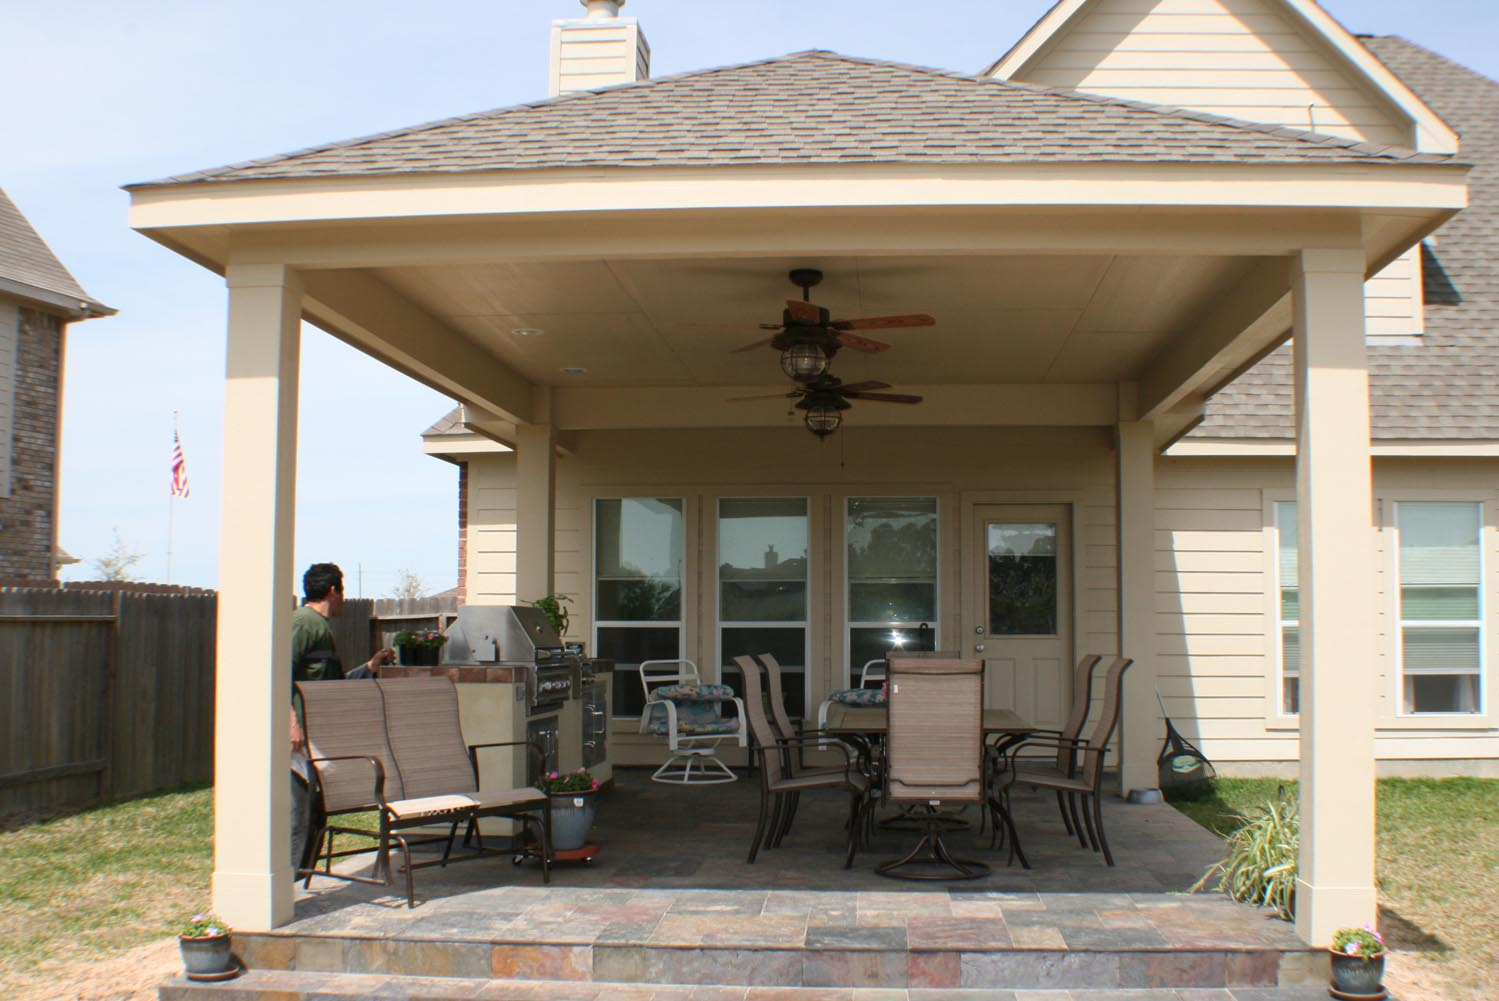 16 by 20 Patio Cover + Outdoor Kitchen - HHI Patio Covers on Backyard Patio Cover  id=61981